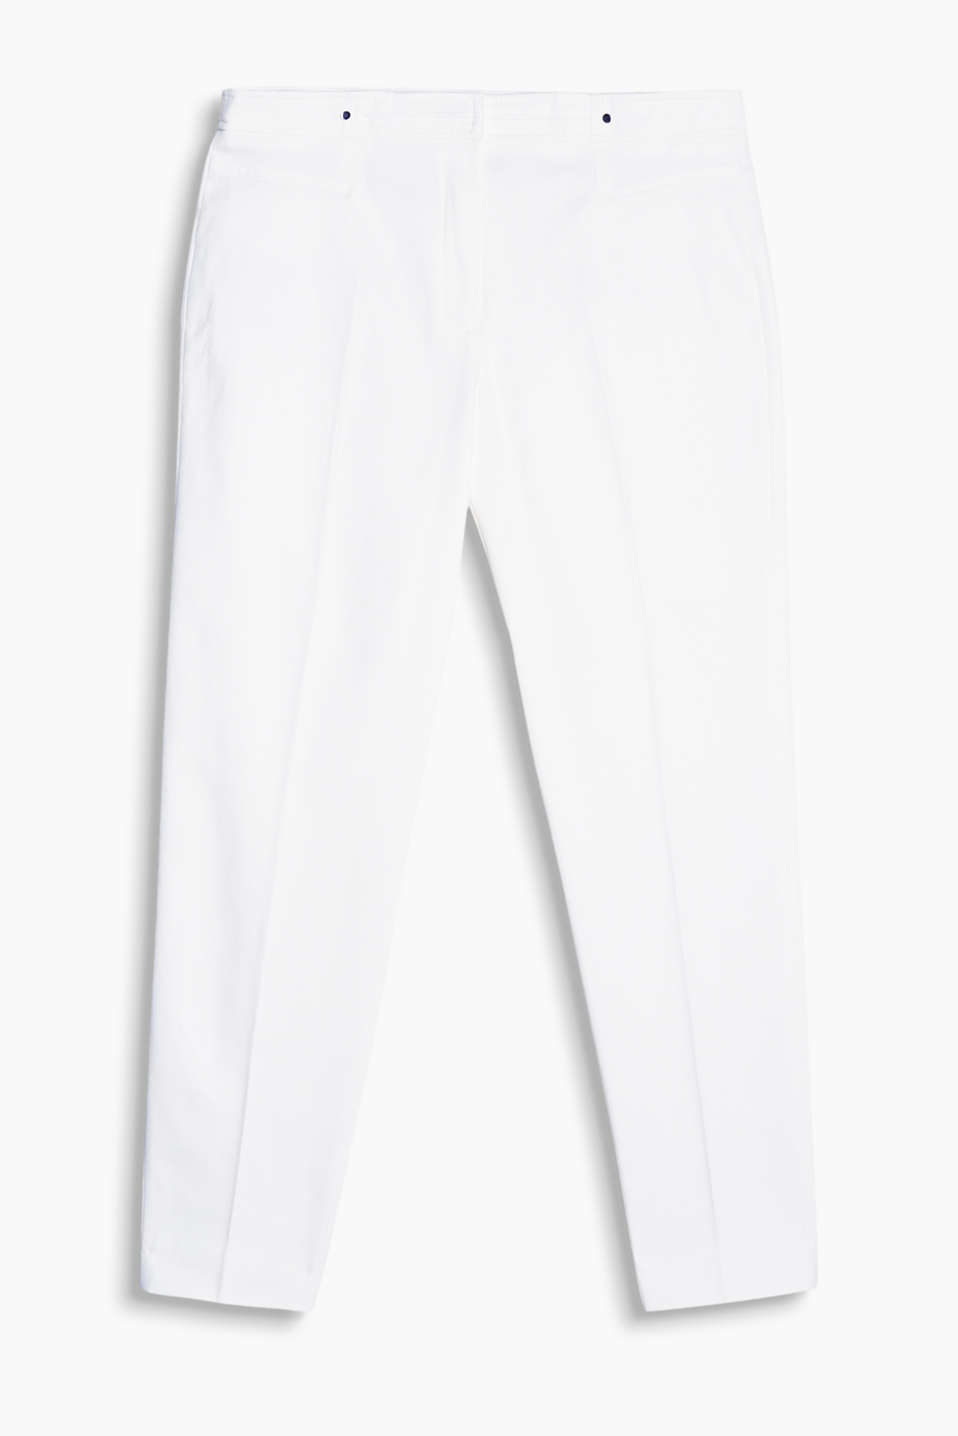 Piqué trousers with pressed pleats, an elaborate waistband design and mock pockets, stretch cotton